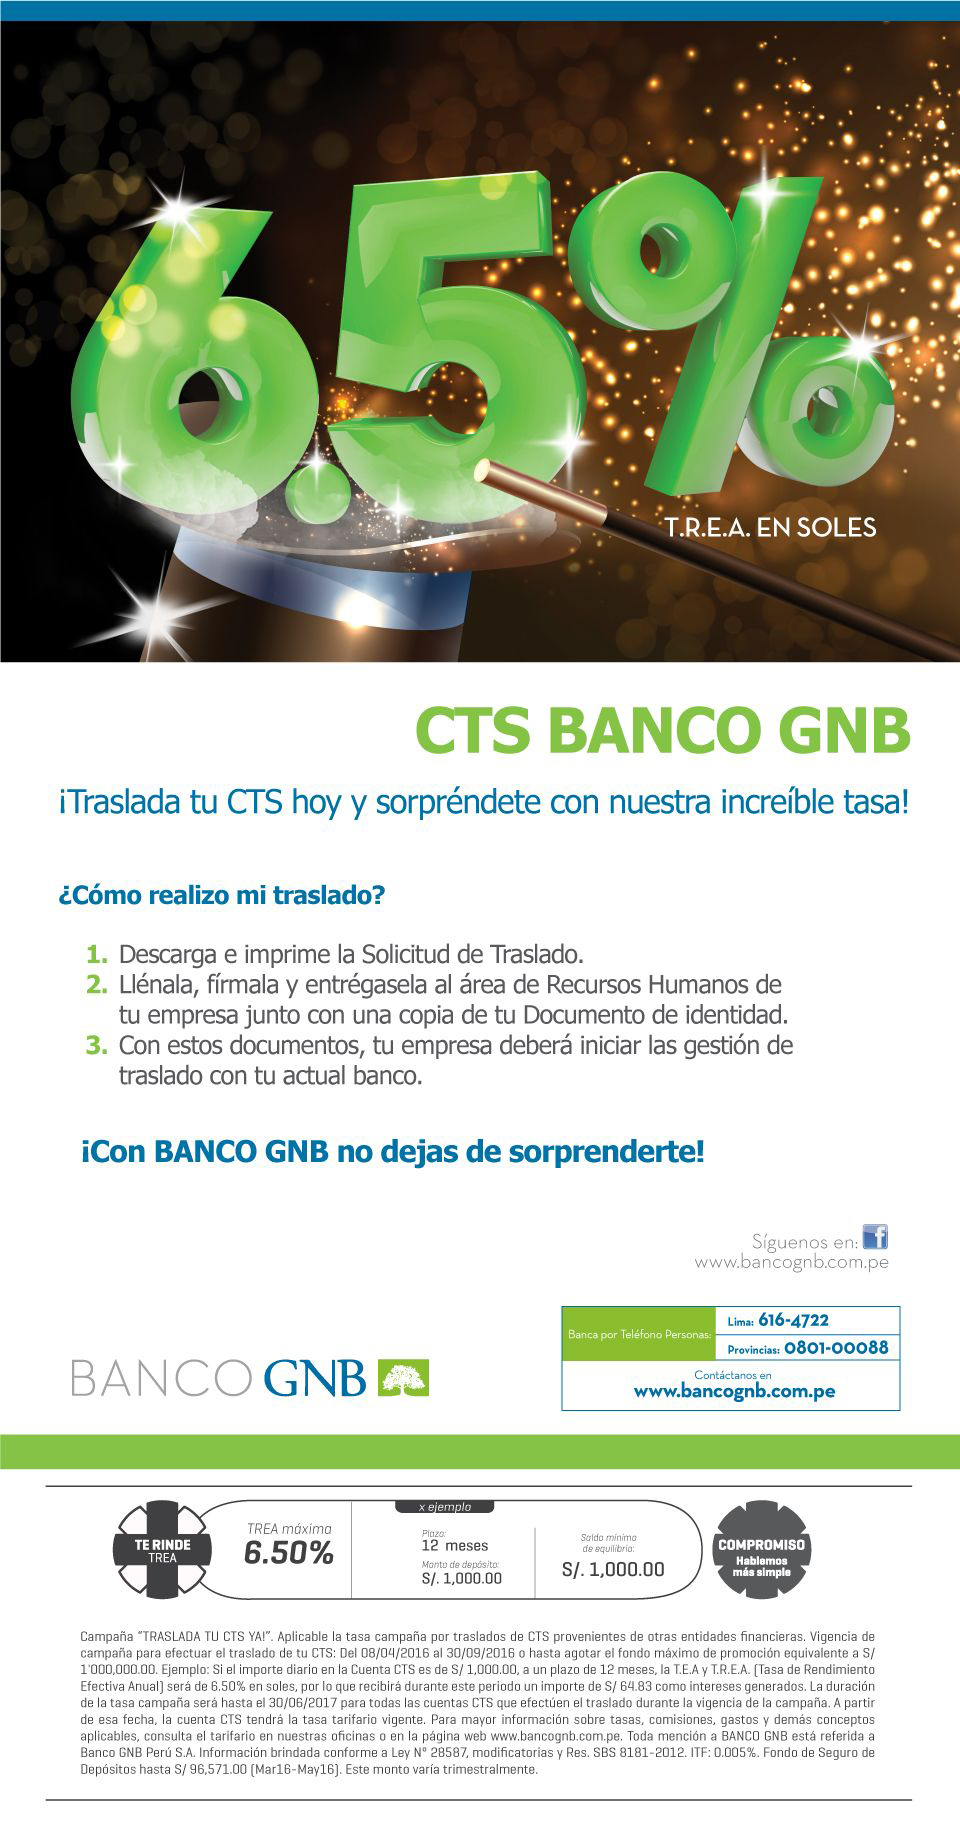 Cts banco gnb for Banco exterior internet 24